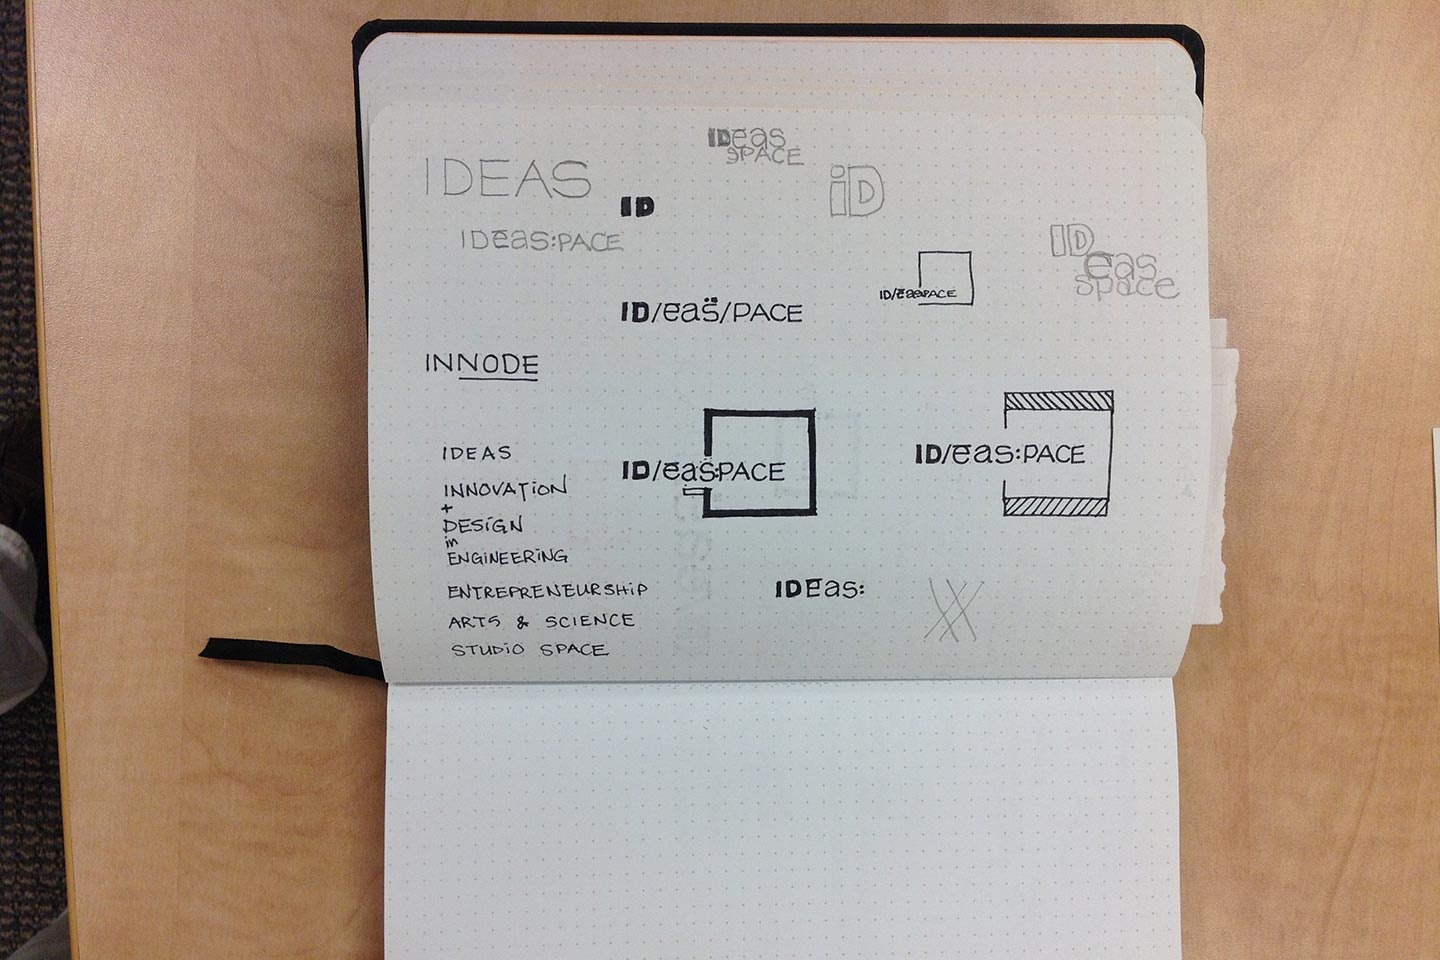 Notebook open to a page displaying logo concepts for ideaspace